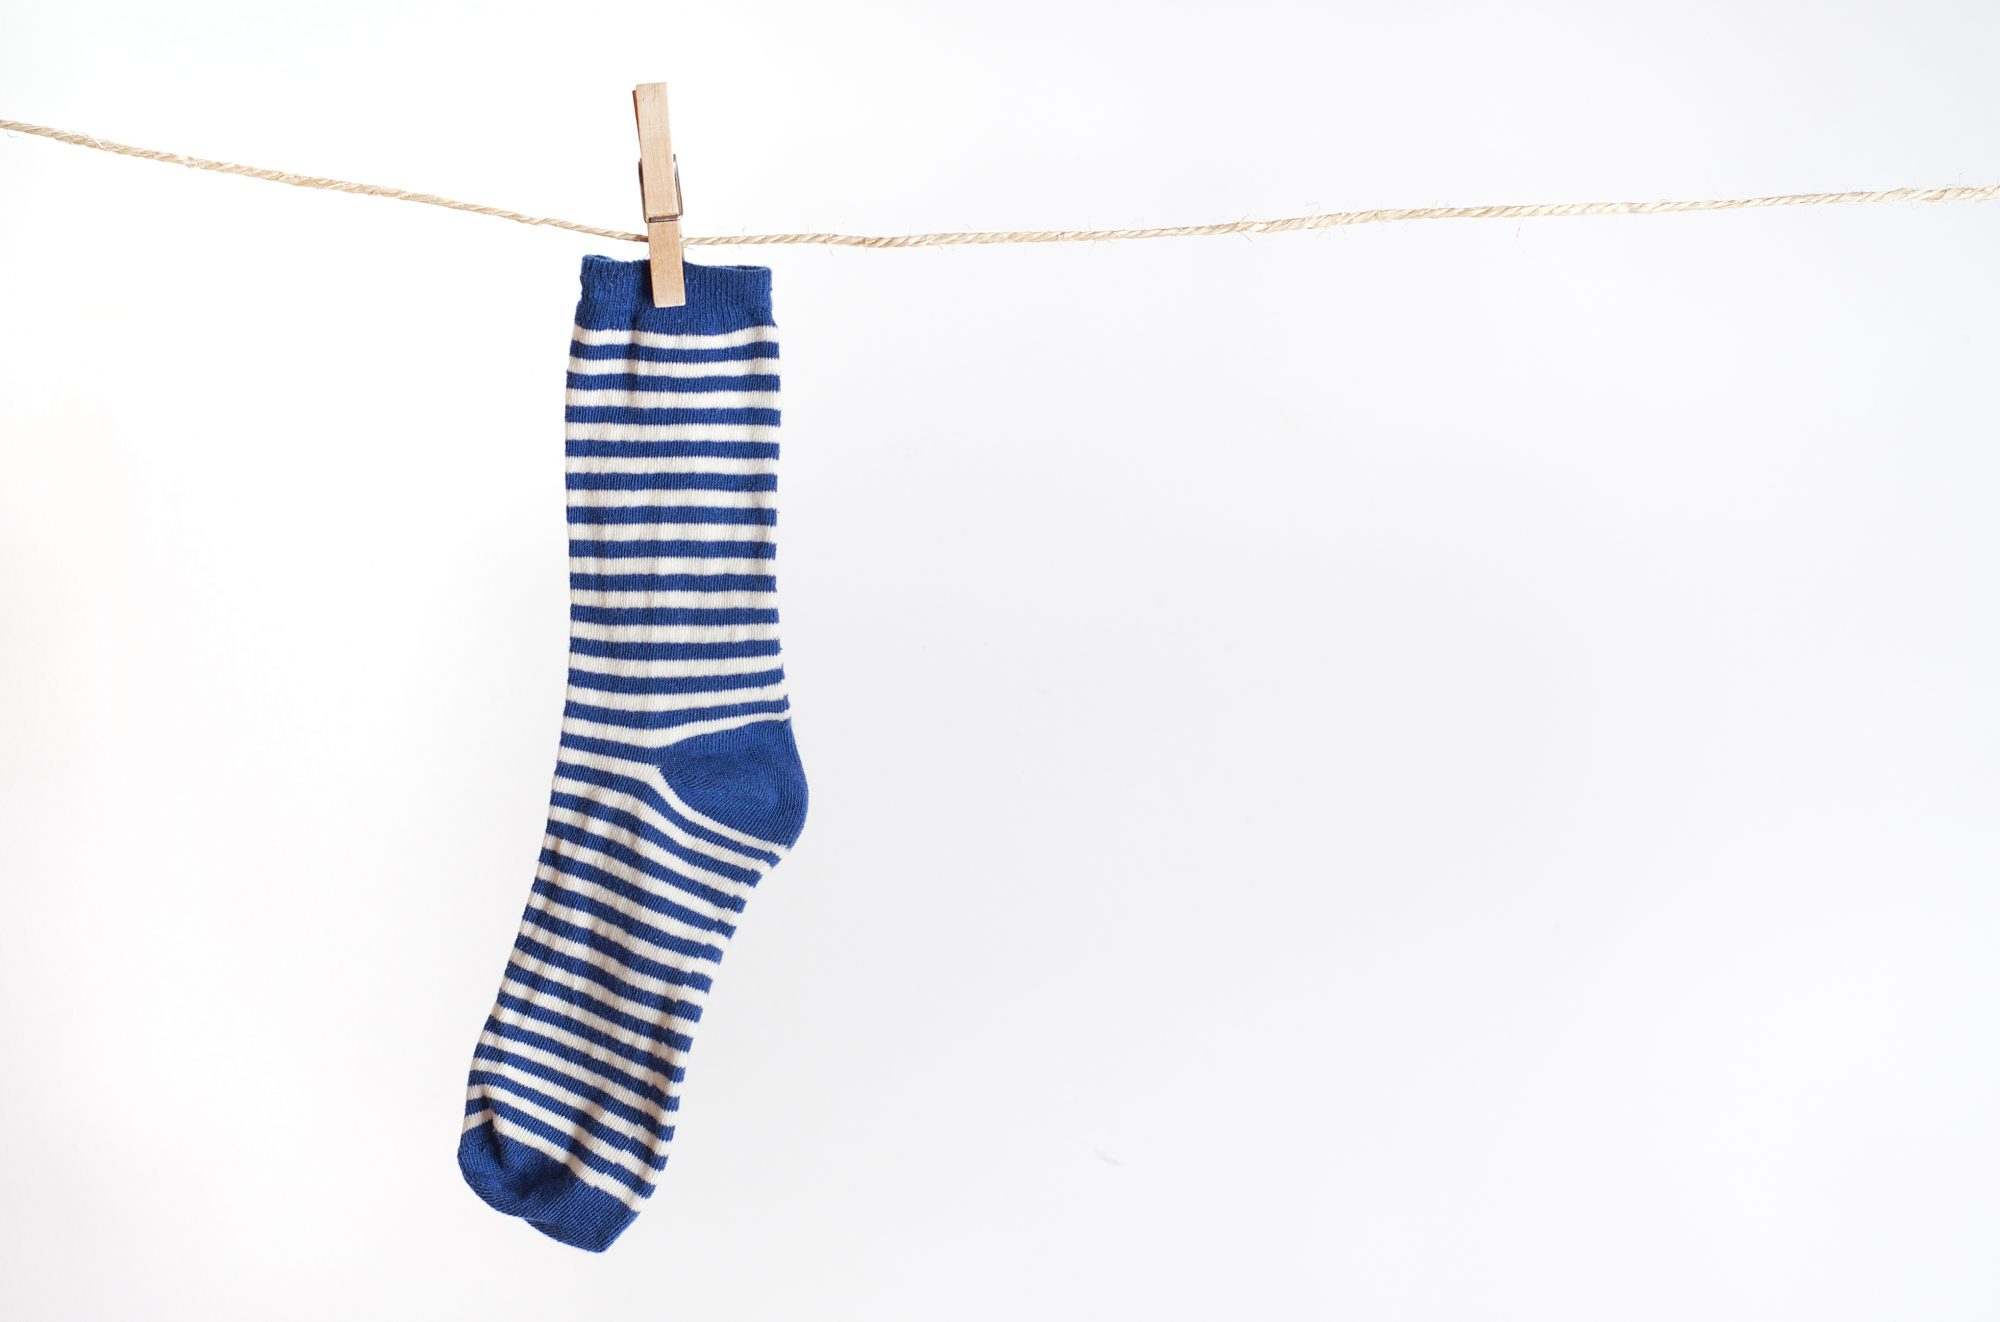 Sock on Clothesline